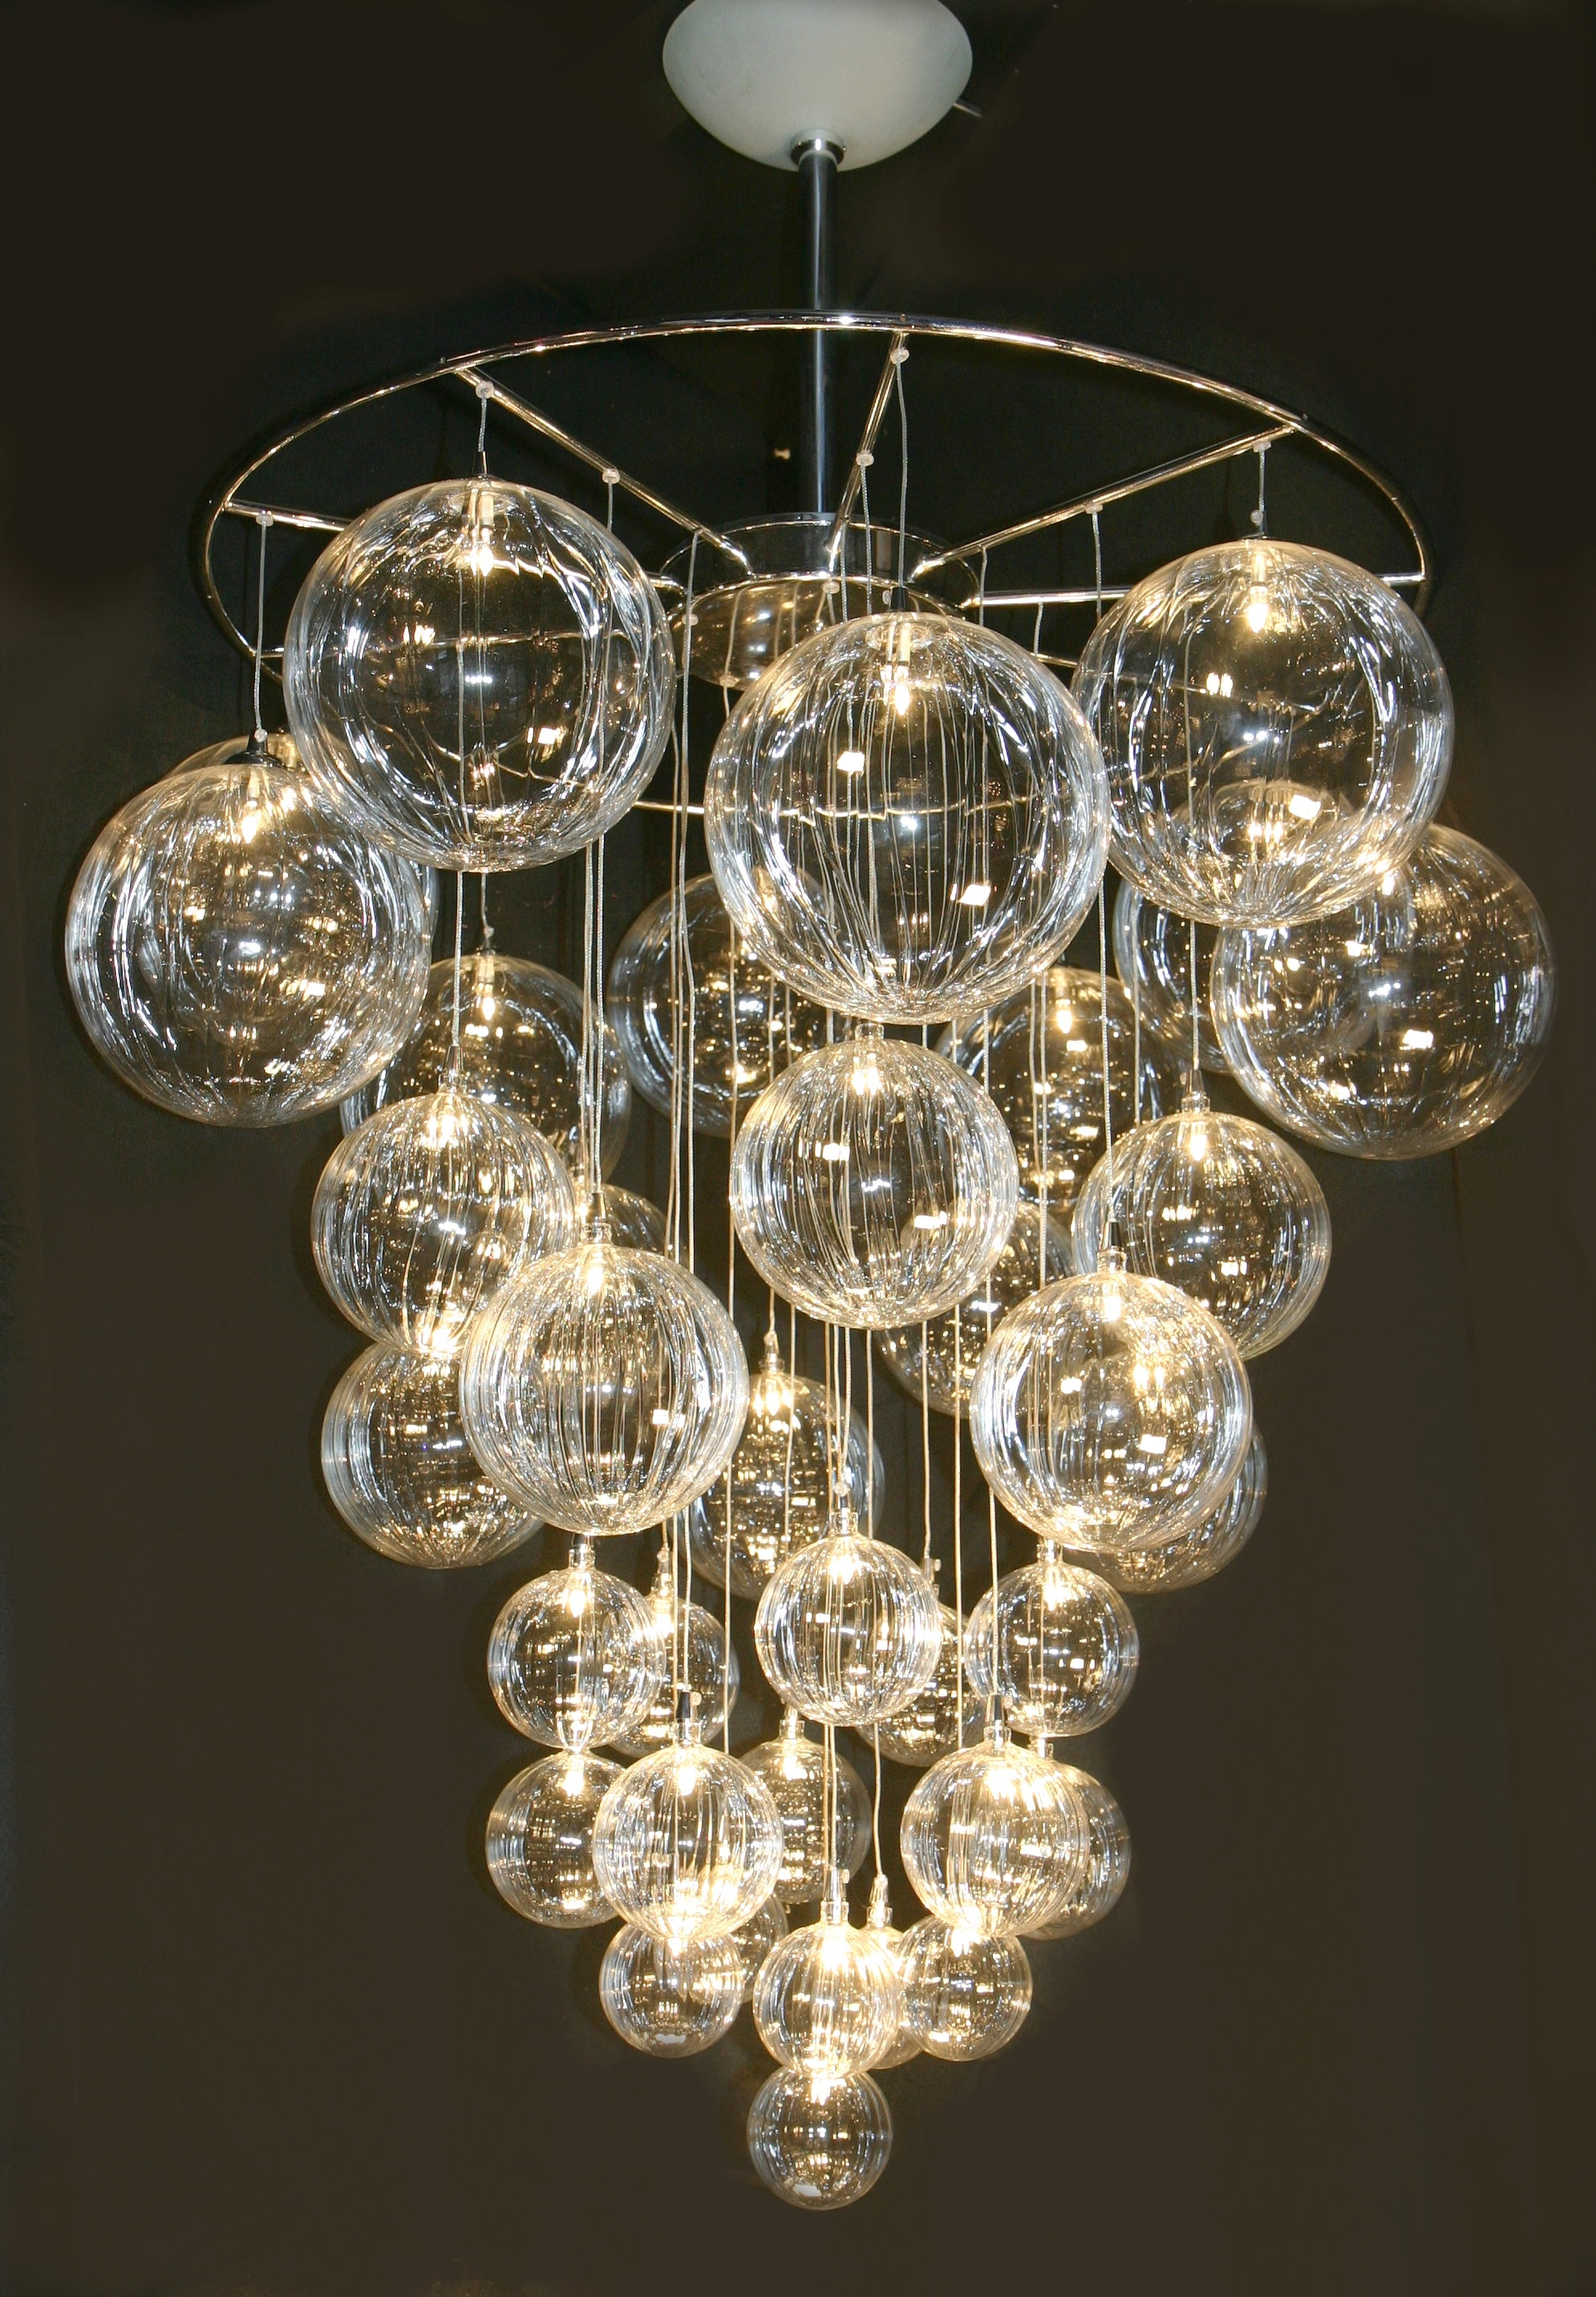 53 Modern Chandelier Lighting Chromecrystalmetal Bubble Shade With Small Glass Chandeliers (Image 2 of 15)